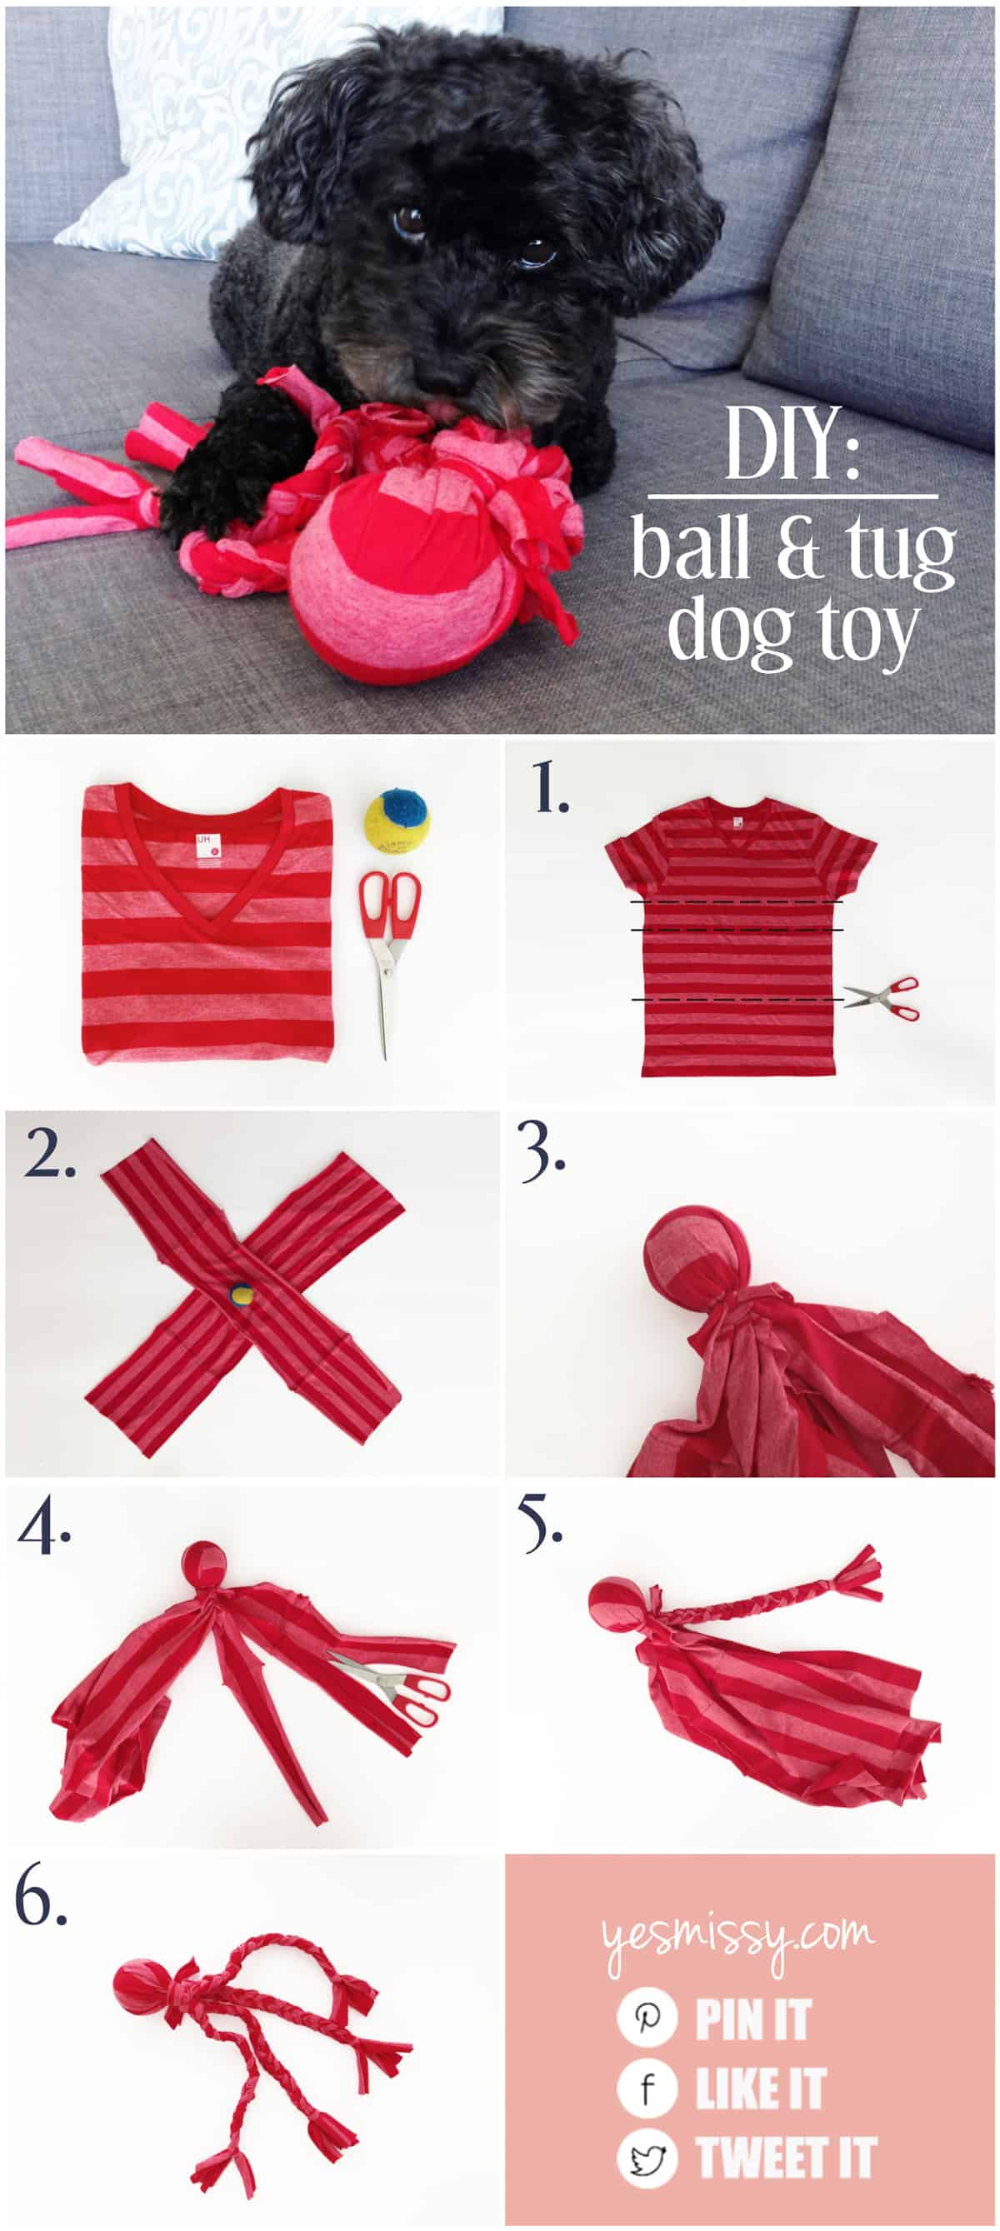 Your dog will love this DIY tug toy!